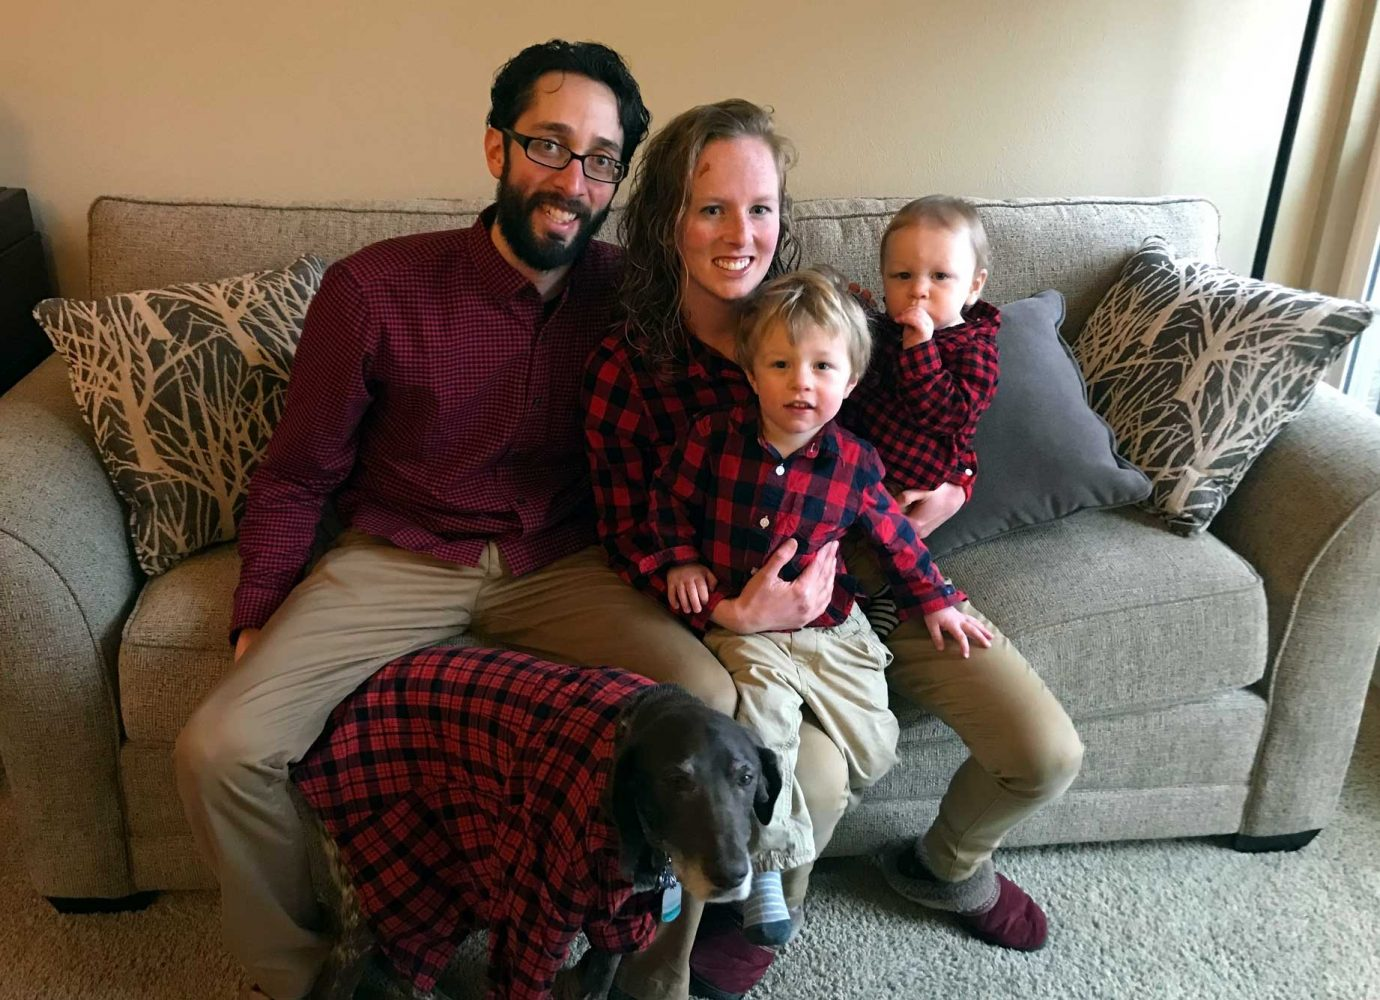 dad, mom, two young kids and a dog sitting on the couch wearing red flannel.